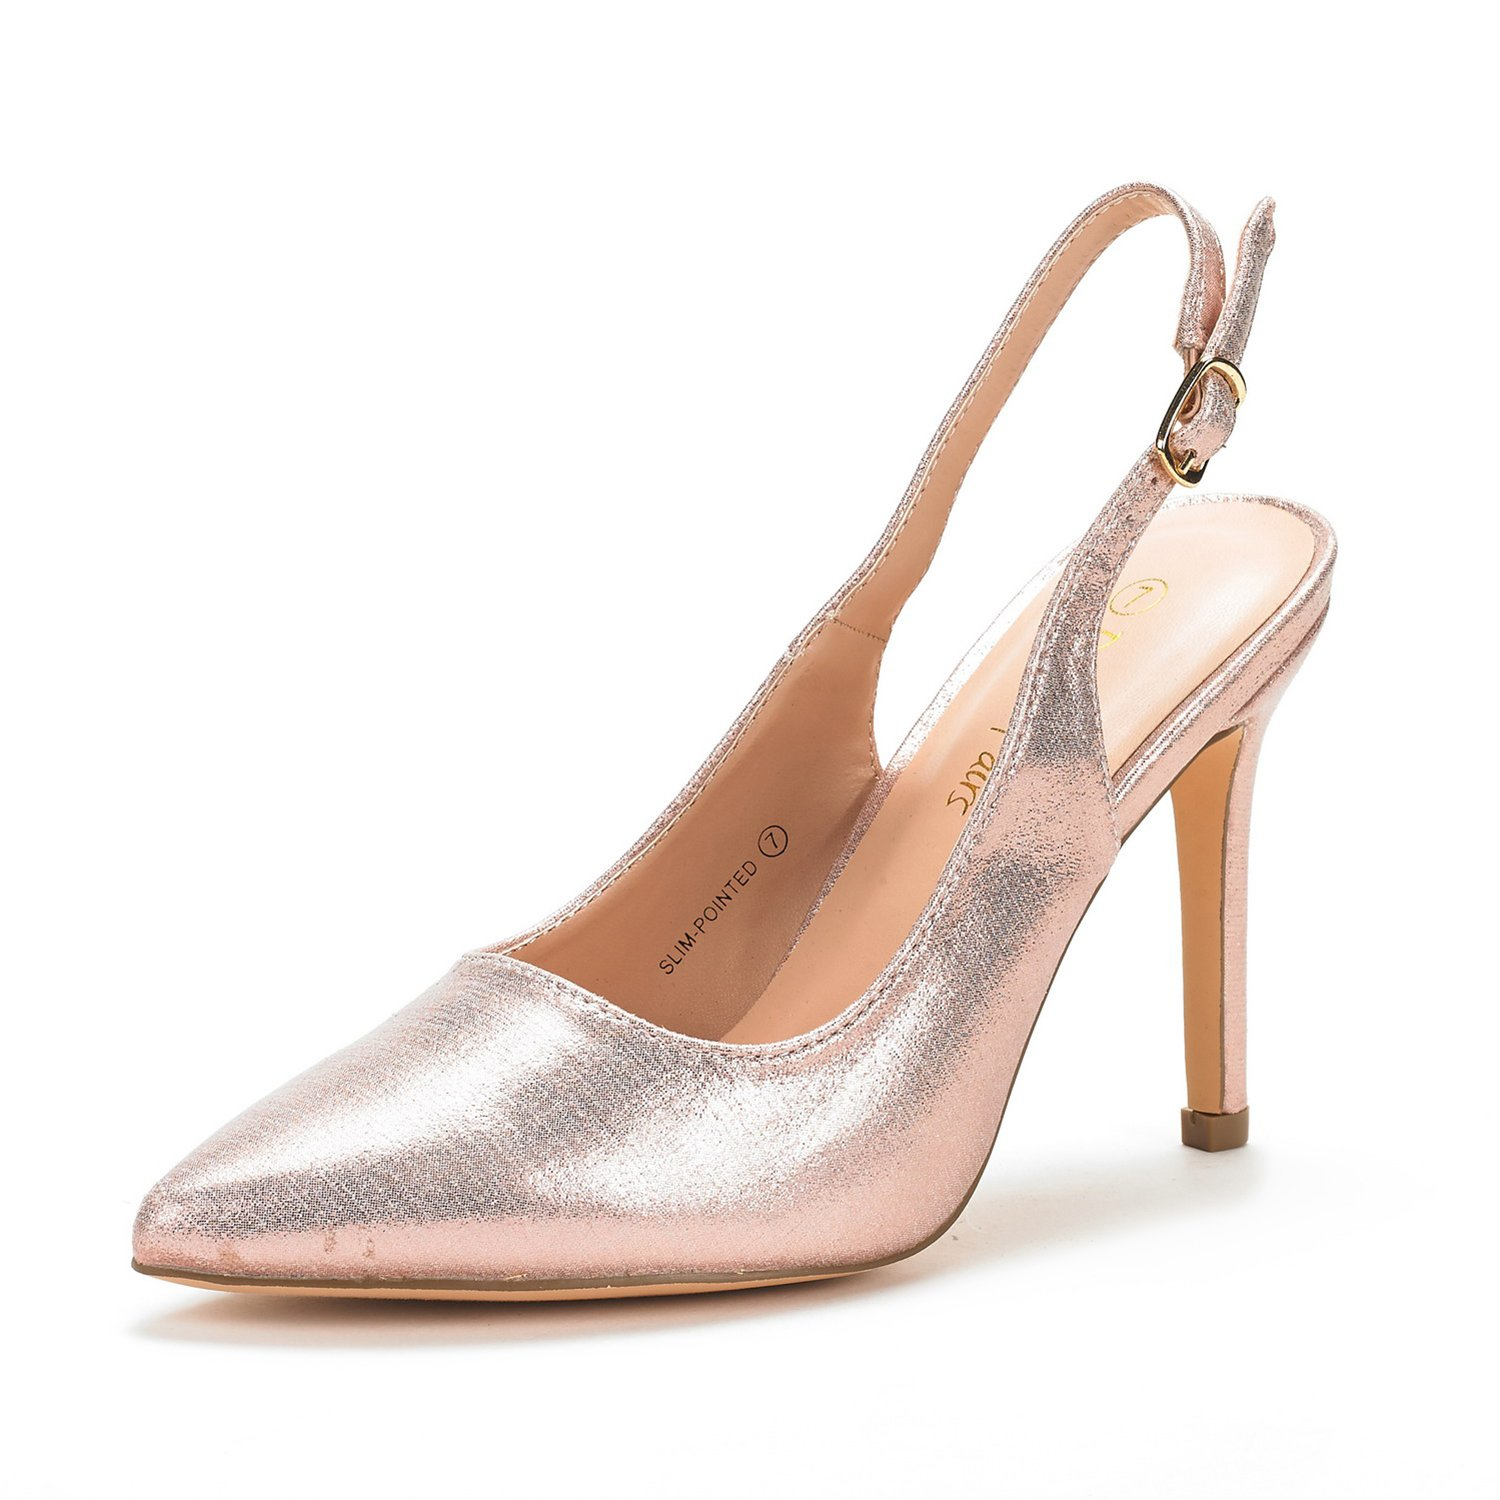 DREAM PAIRS Women's Slim-Pointed Champagne Pearl High Heel Pump Shoes - 8.5 M US